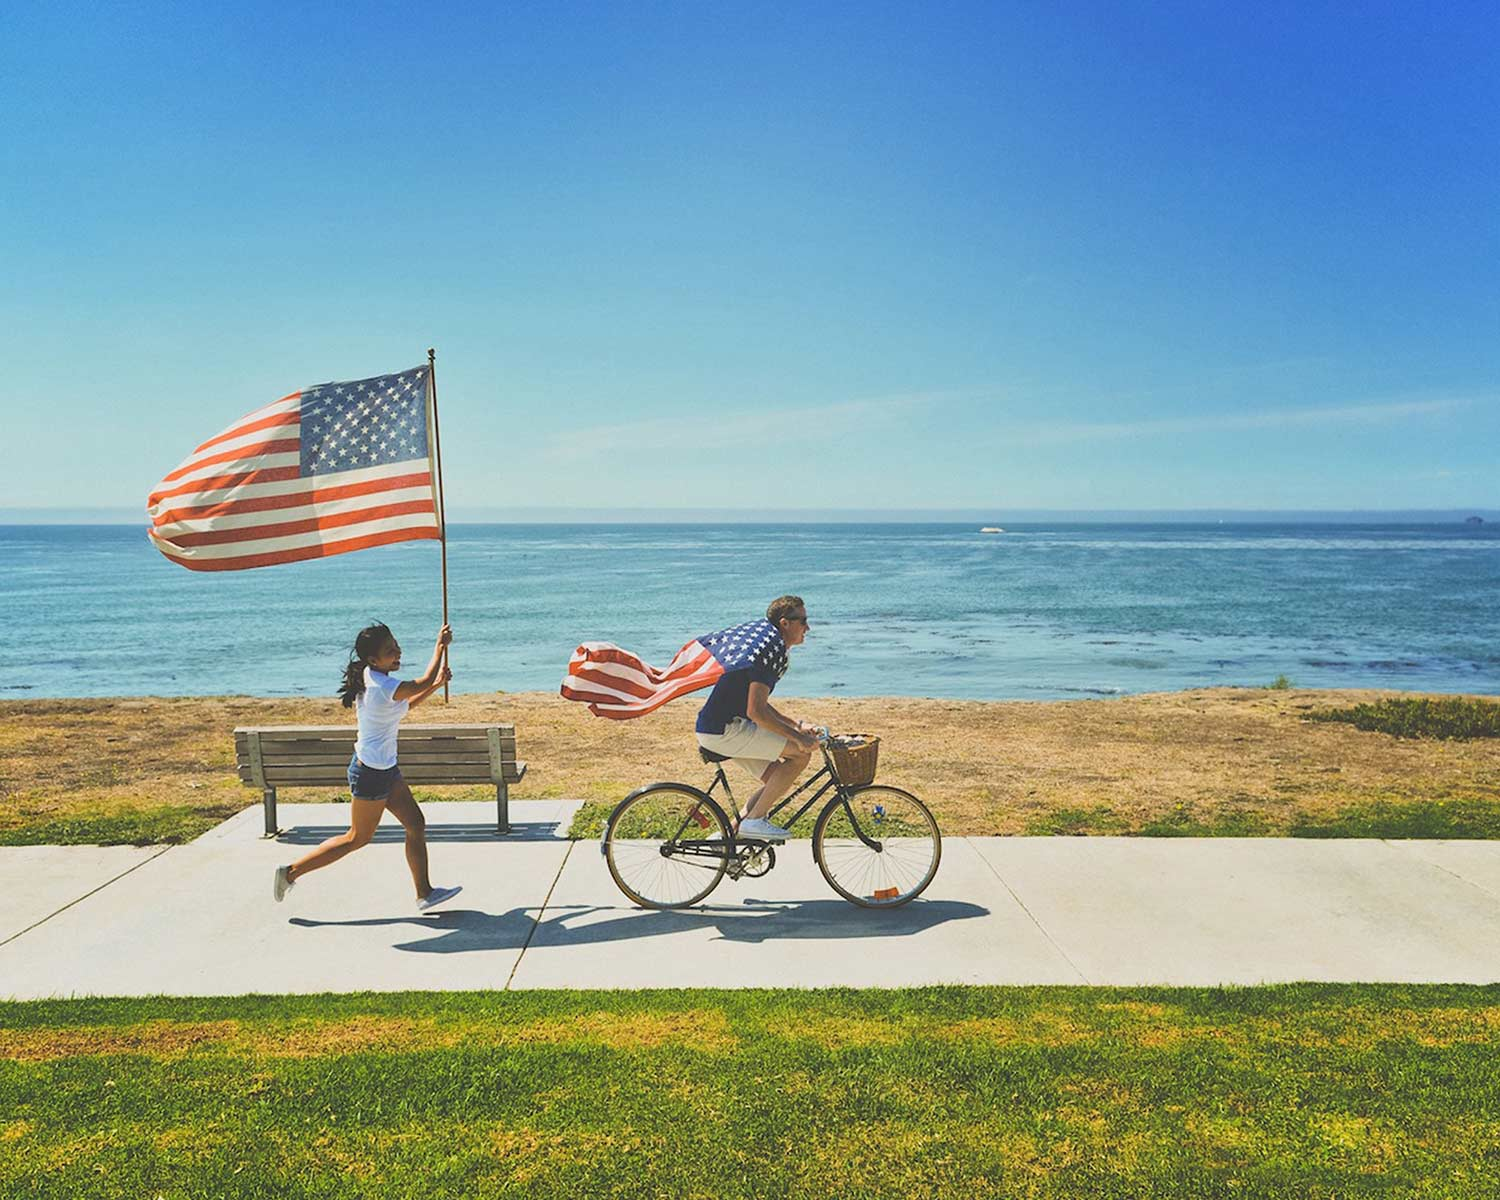 Beside the ocean, a man rides a bike with an American flag tied around his neck like a cape. Behind him, a woman runs with an American flag on a flagpole.